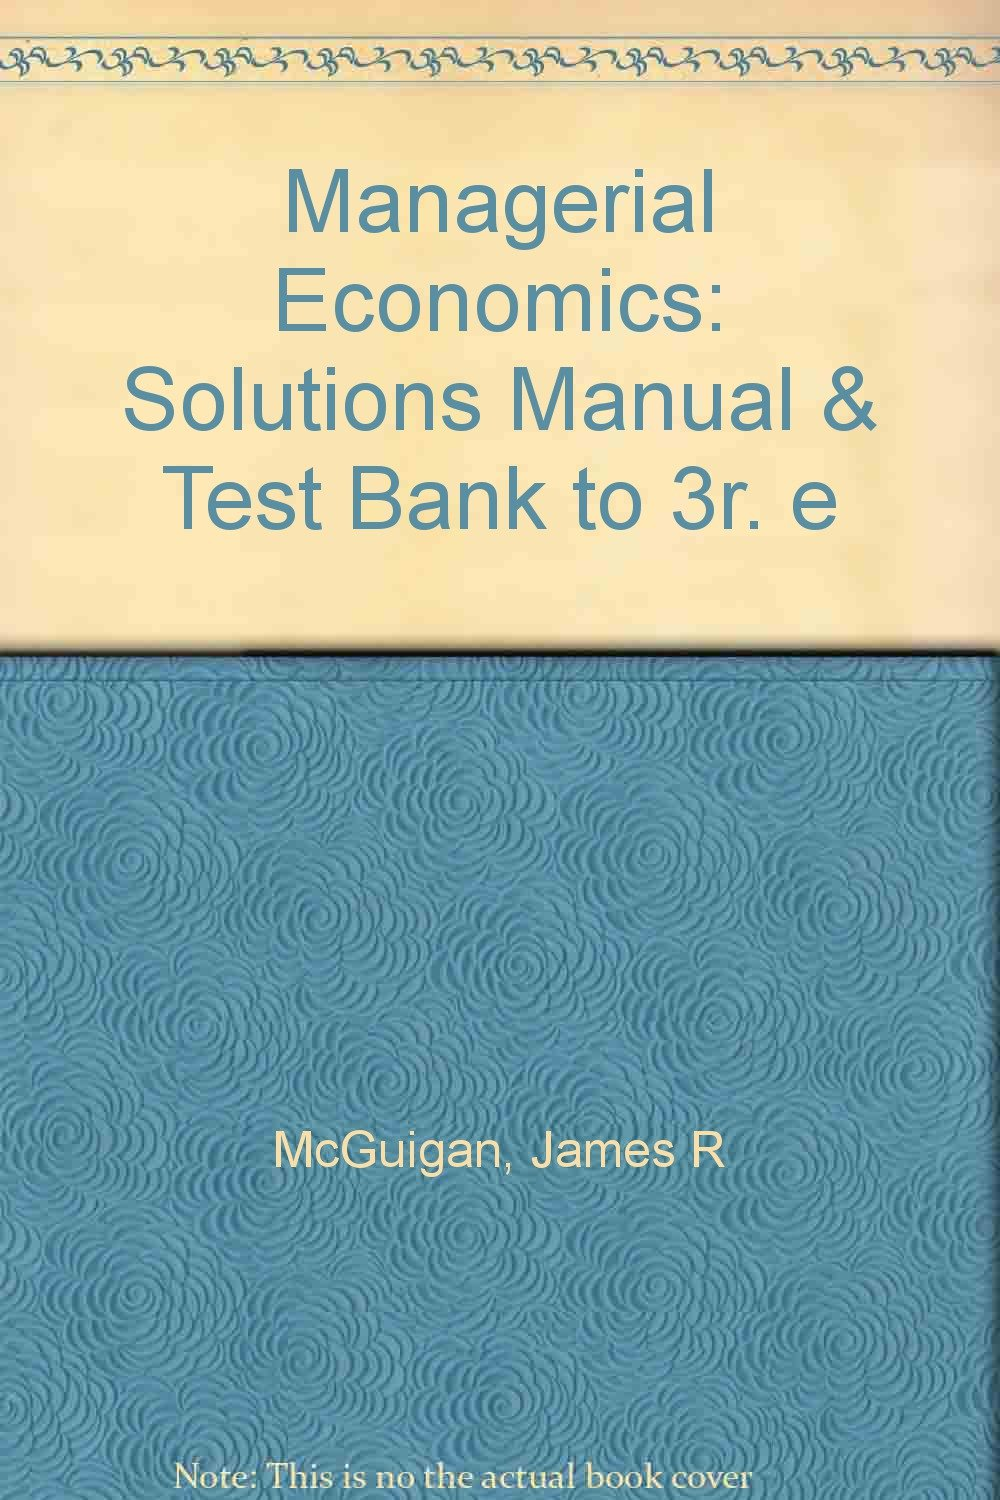 Managerial Economics: Solutions Manual & Test Bank to 3r. e: James R  McGuigan, R Charles Moyer: 9780314711090: Amazon.com: Books